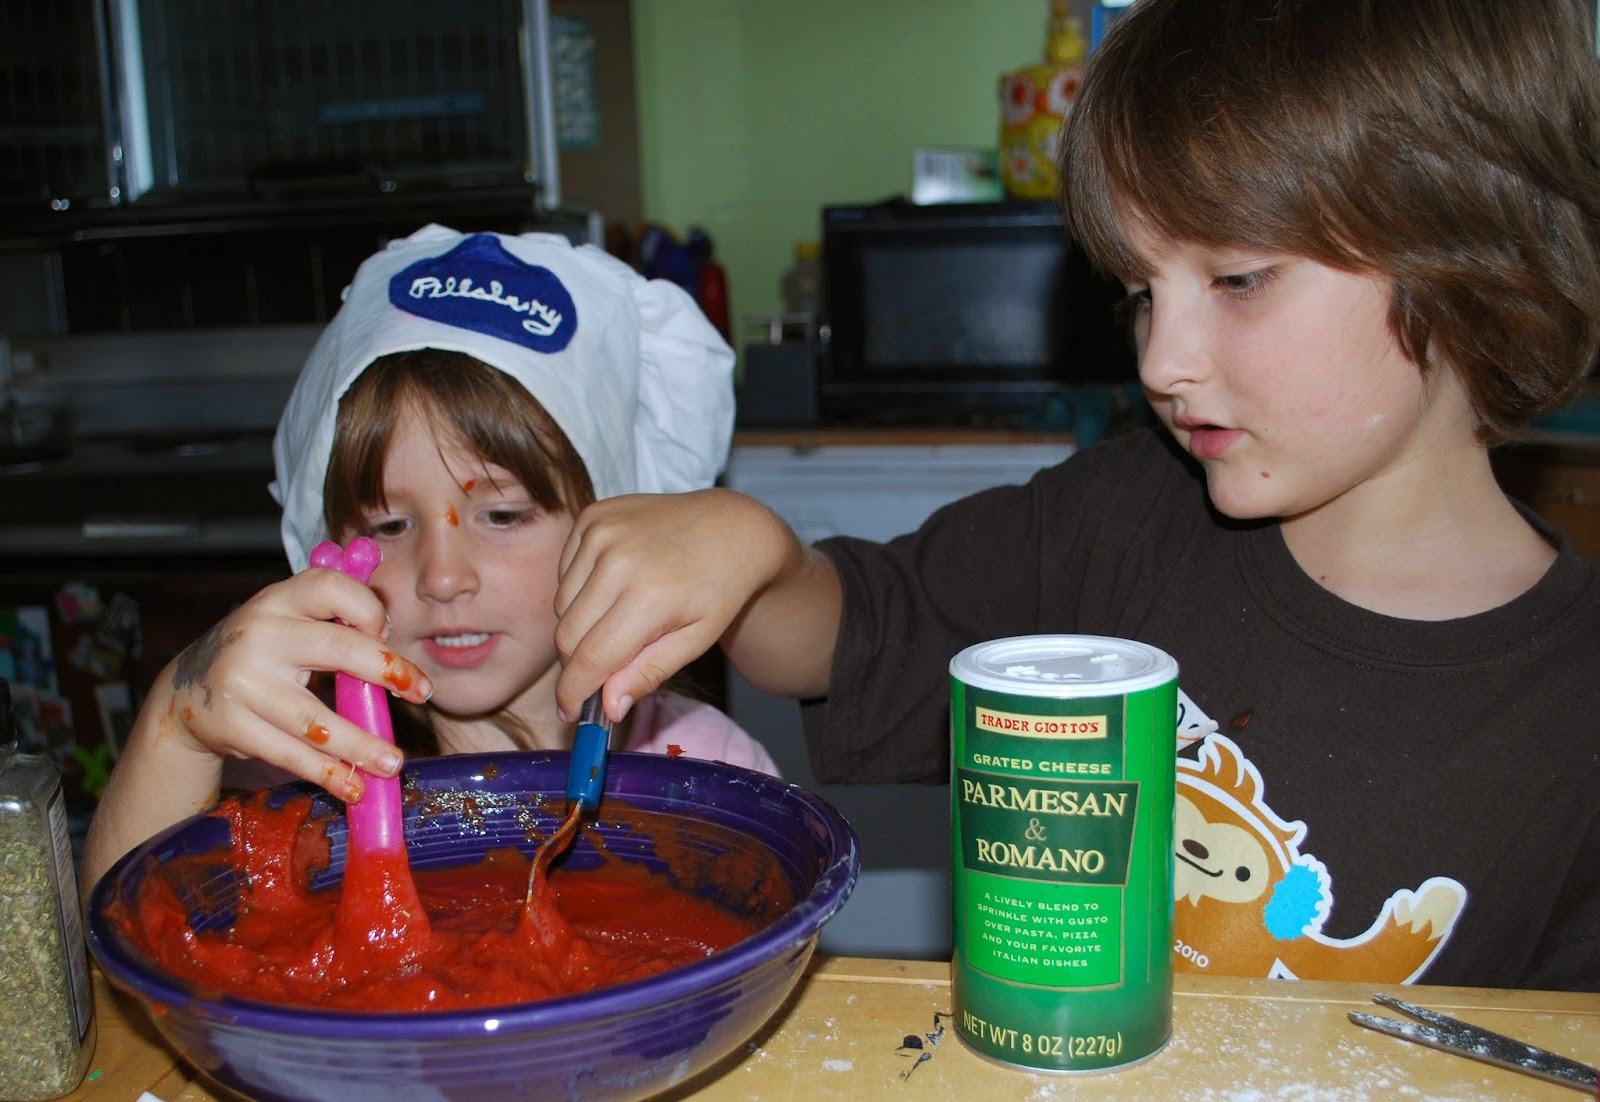 Change The World Wednesday (#CTWW) - Family Cook Day